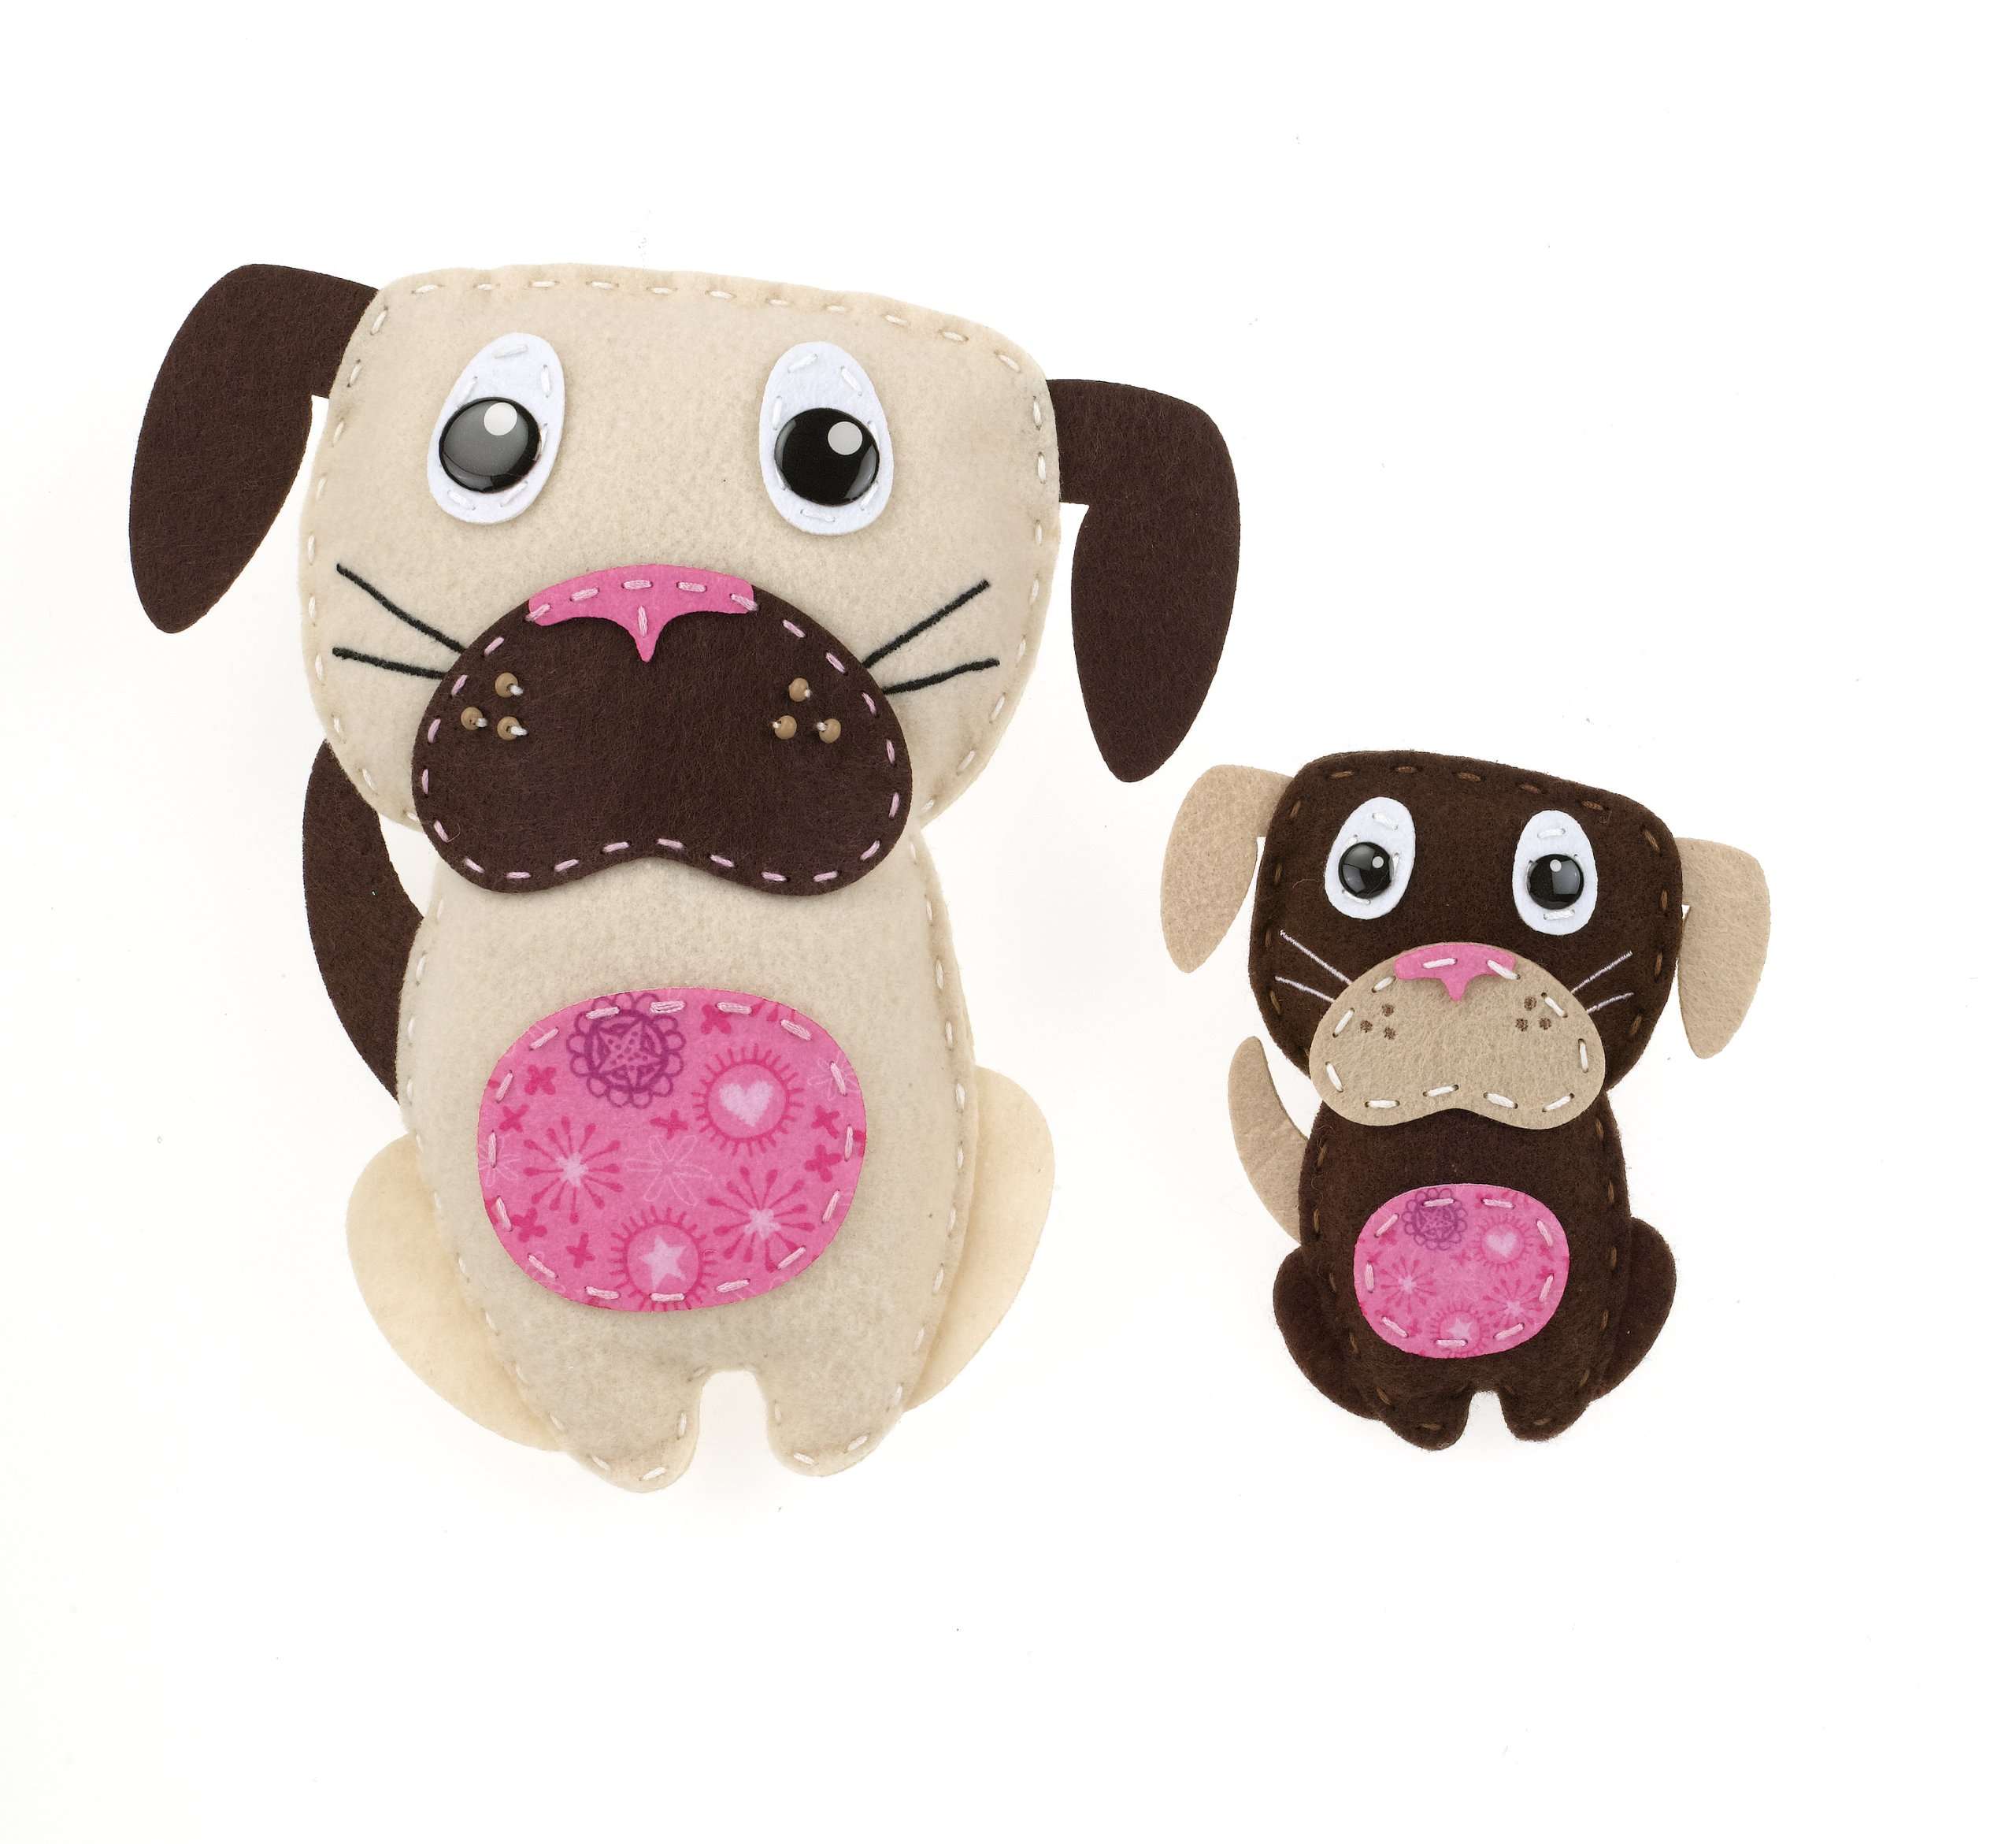 American Girl Crafts 30-677401 Dogs Sew and Stuff Kit